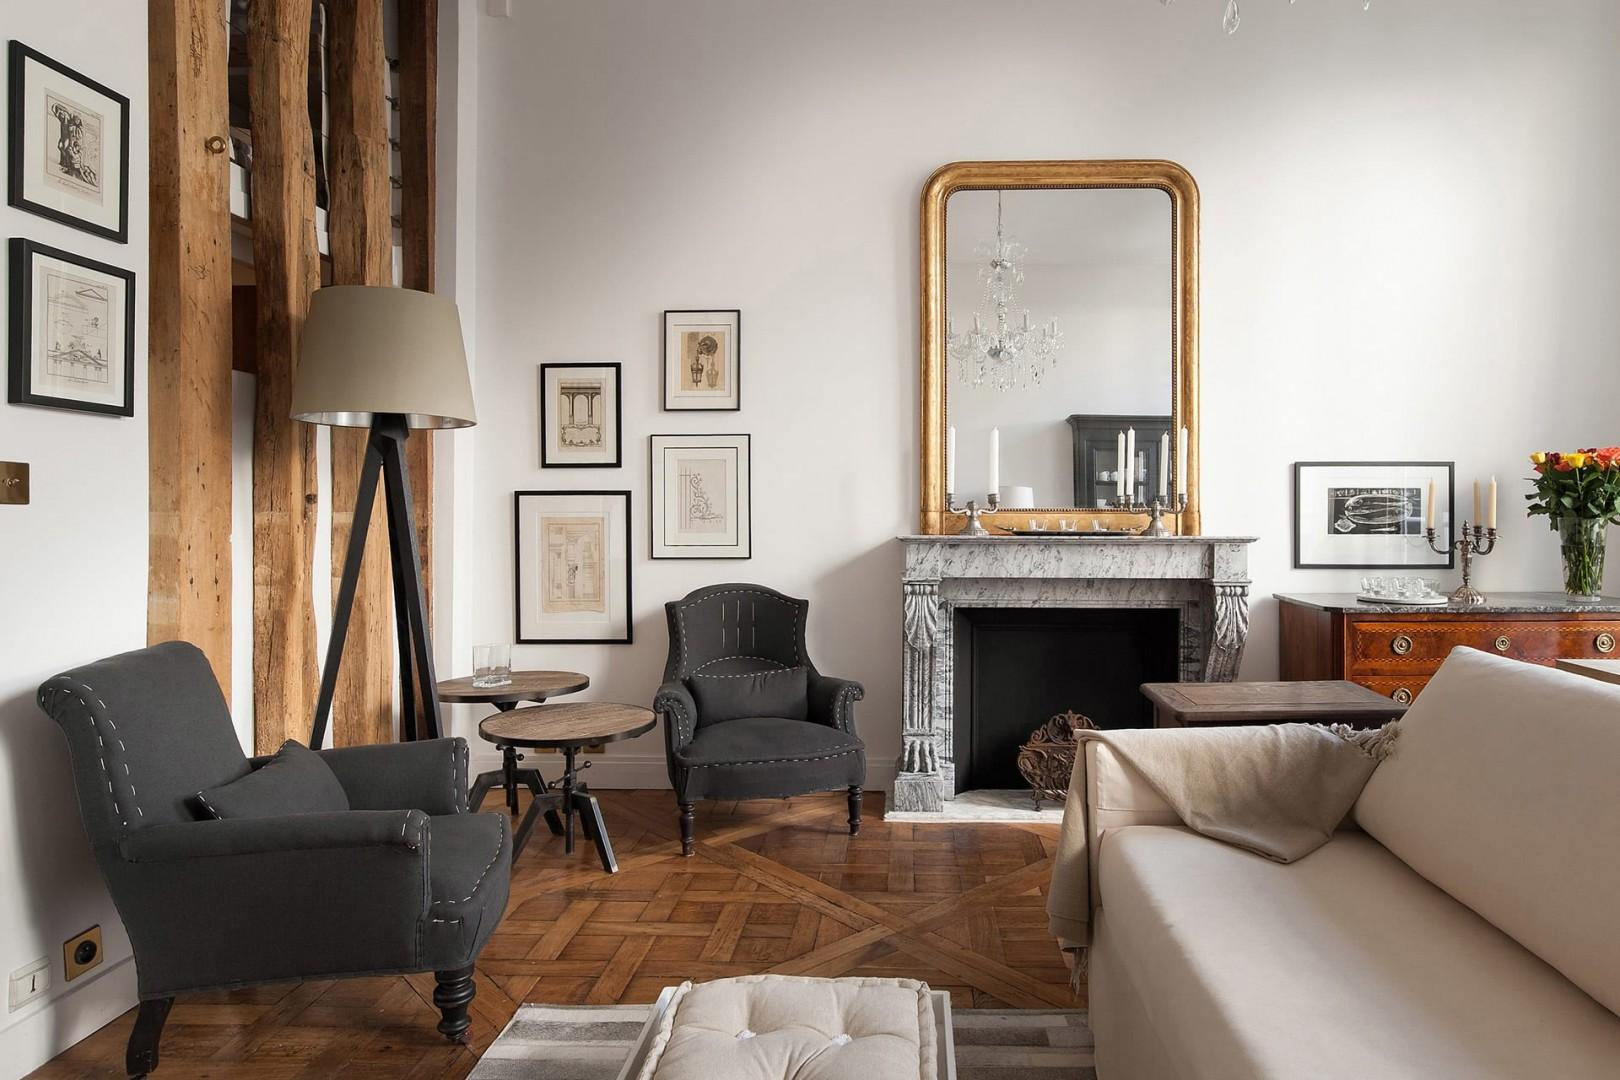 Vintage class and minimalism coincide in this stylish rental.